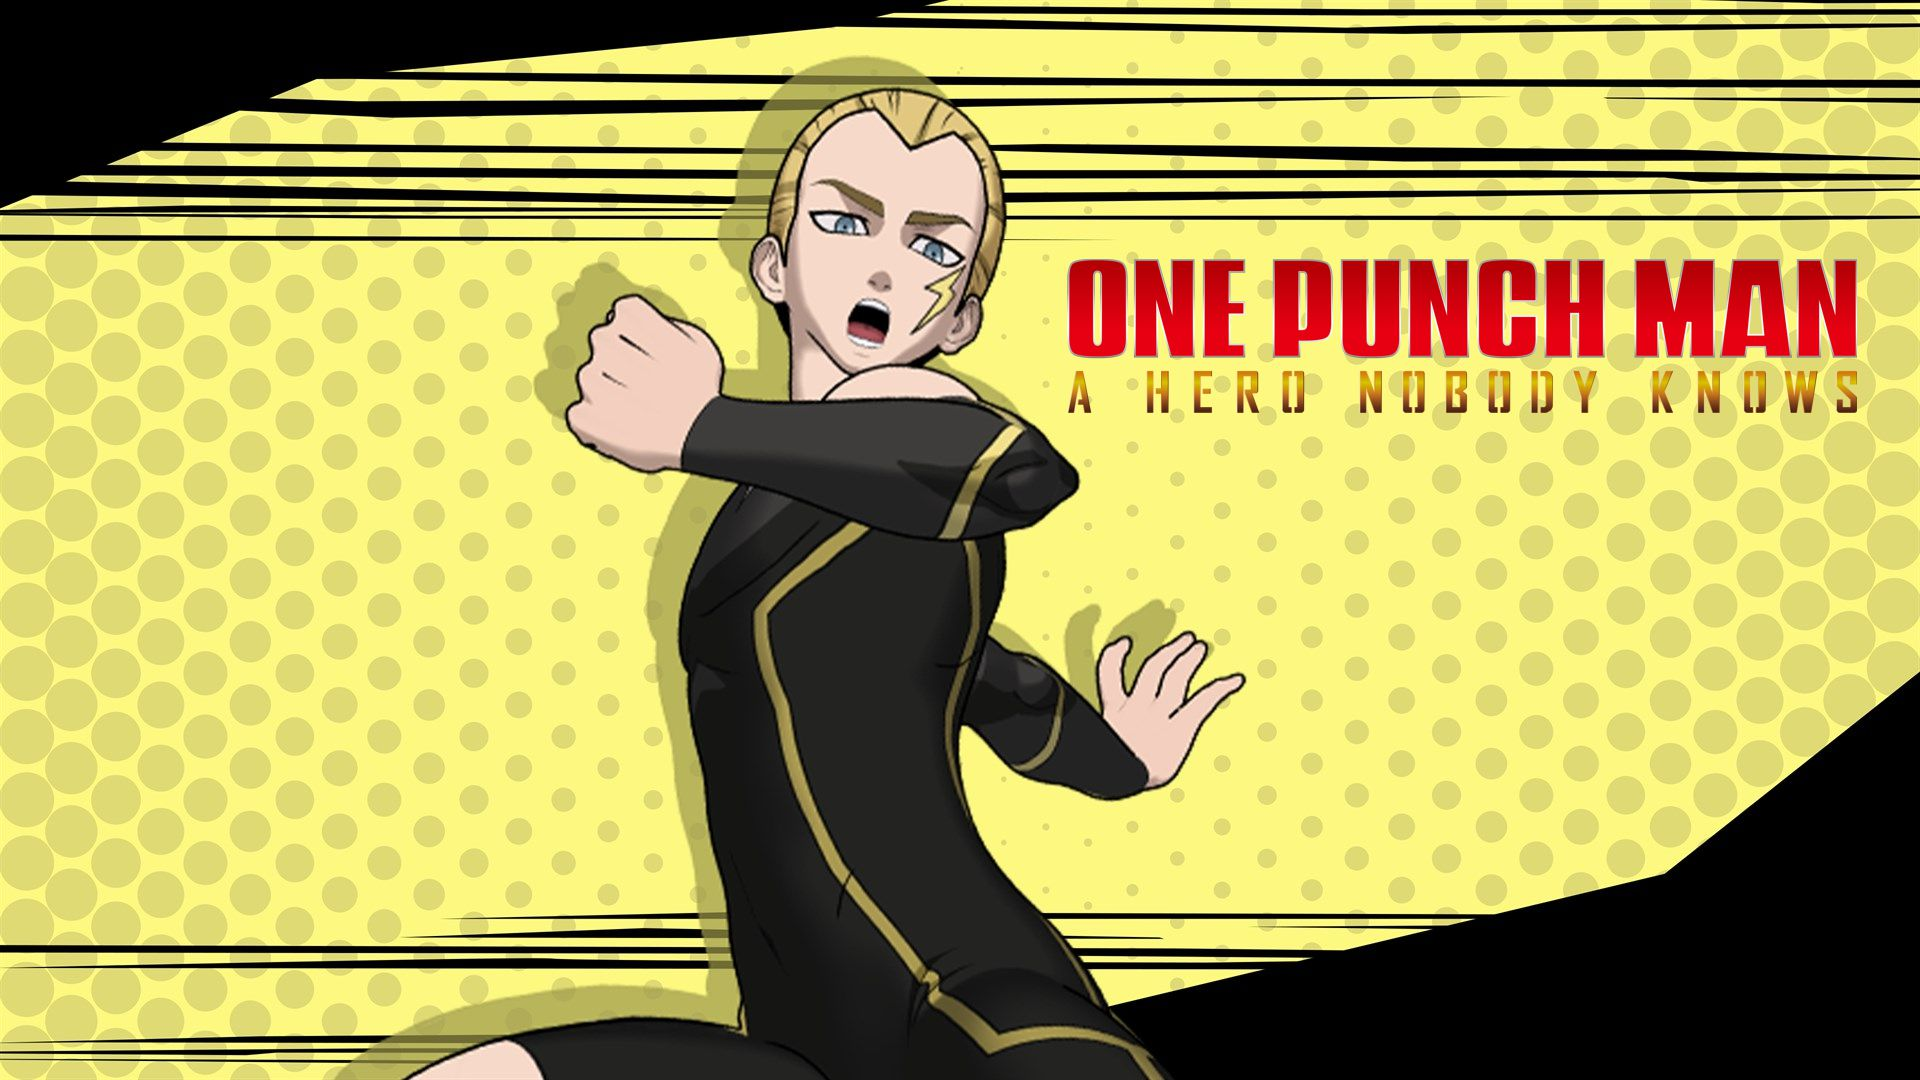 One Punch Man A Hero Nobody Knows Lightning Max